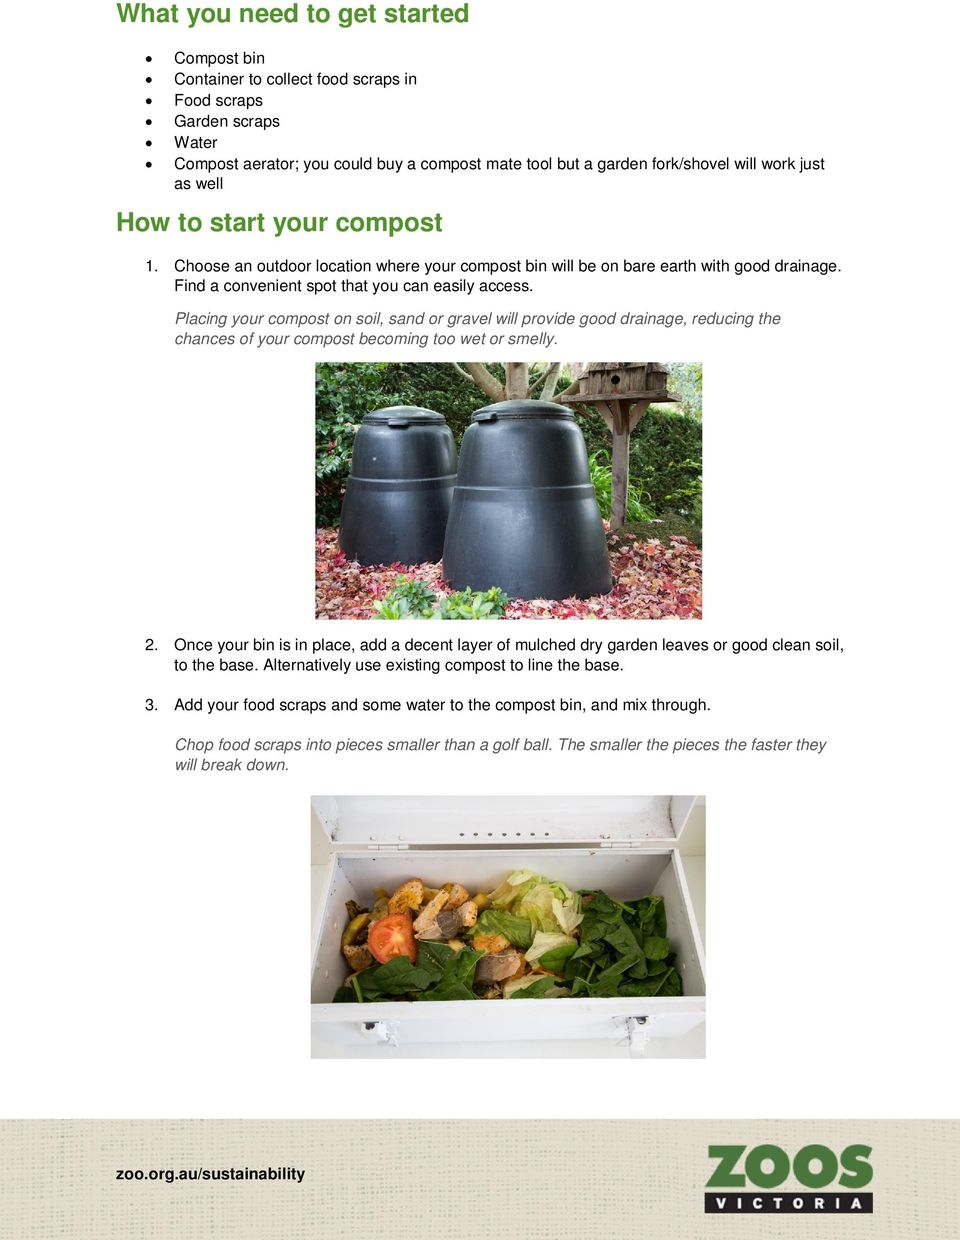 Placing your compost on soil, sand or gravel will provide good drainage, reducing the chances of your compost becoming too wet or smelly. 2.